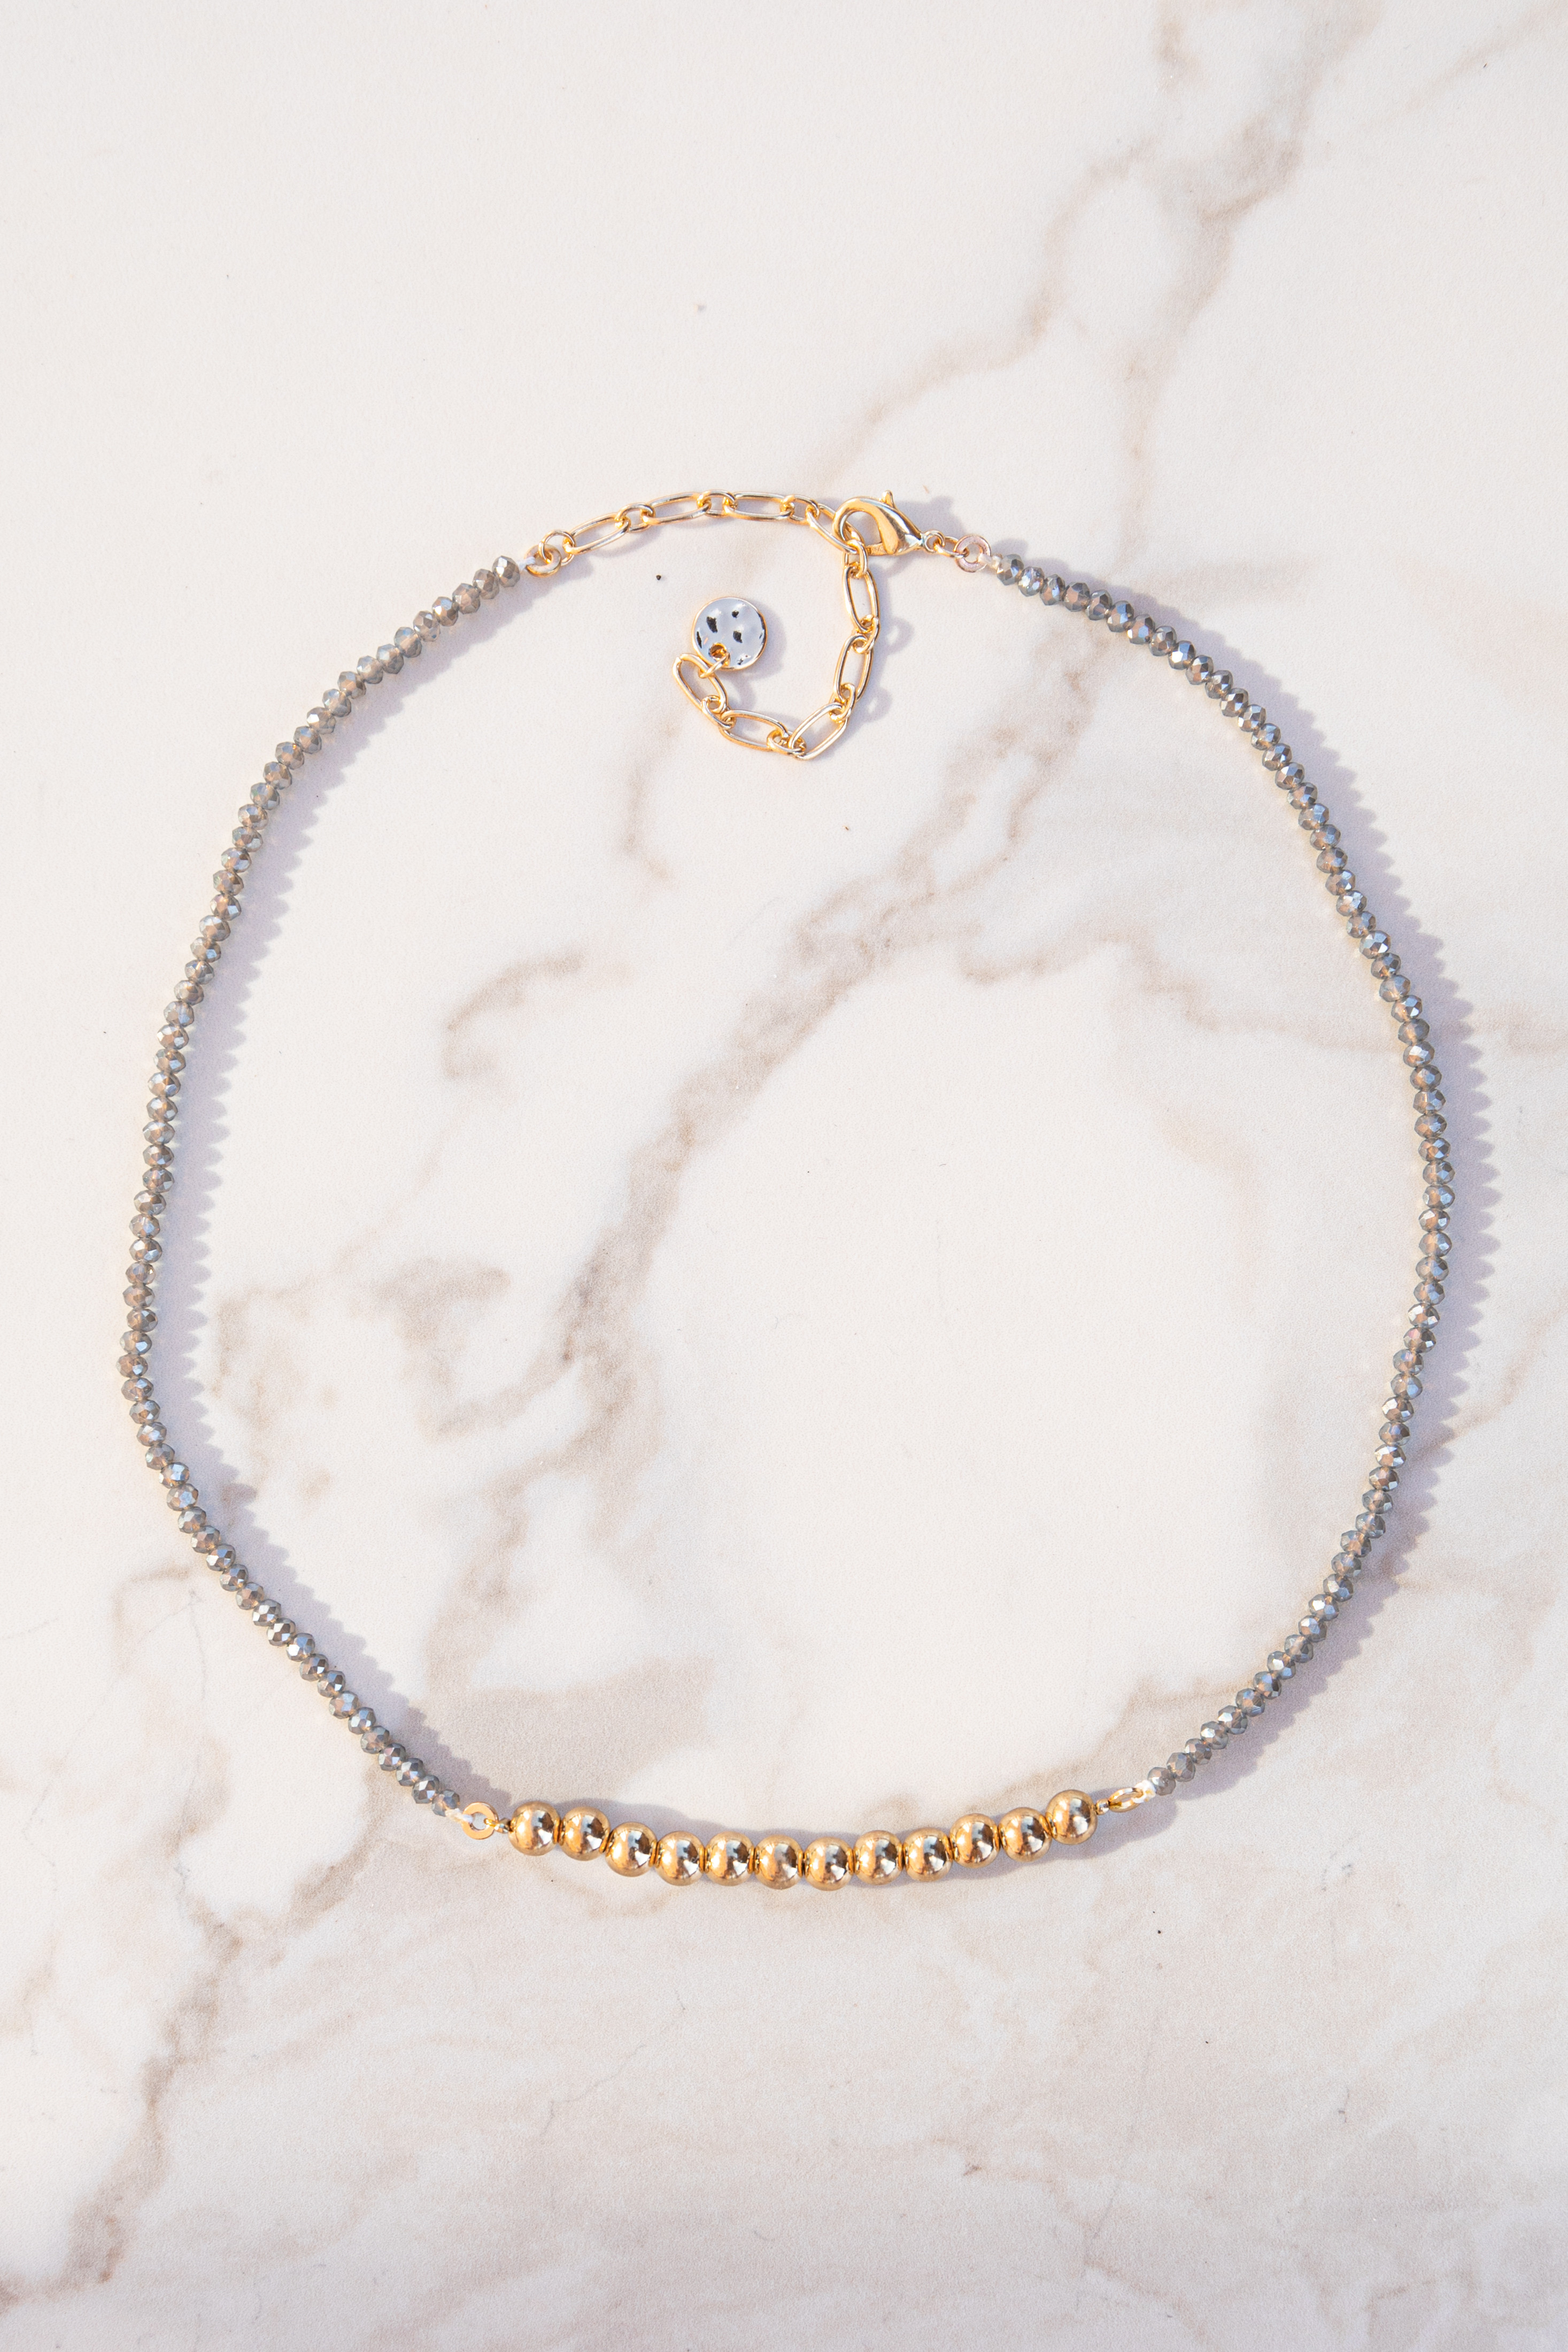 Gold Short Necklace with Grey Rhinestone Bead Details